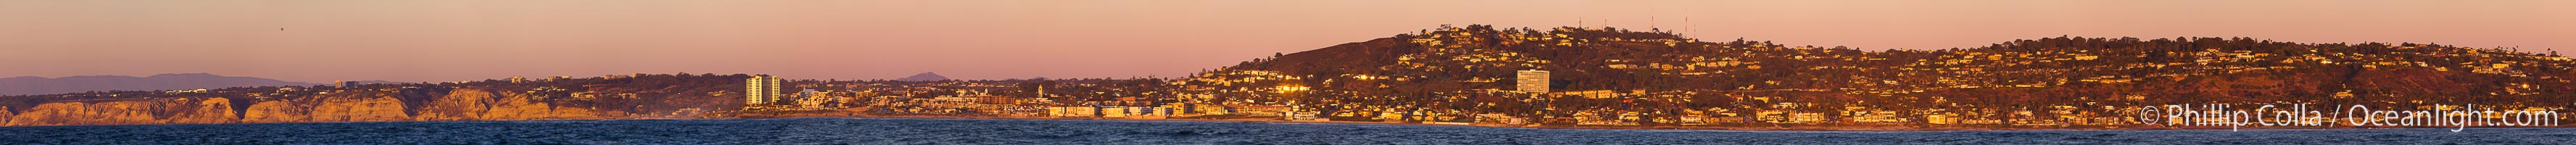 Panorama of La Jolla, with Mount Soledad aglow at sunset, viewed from the Pacific Ocean offshore of San Diego